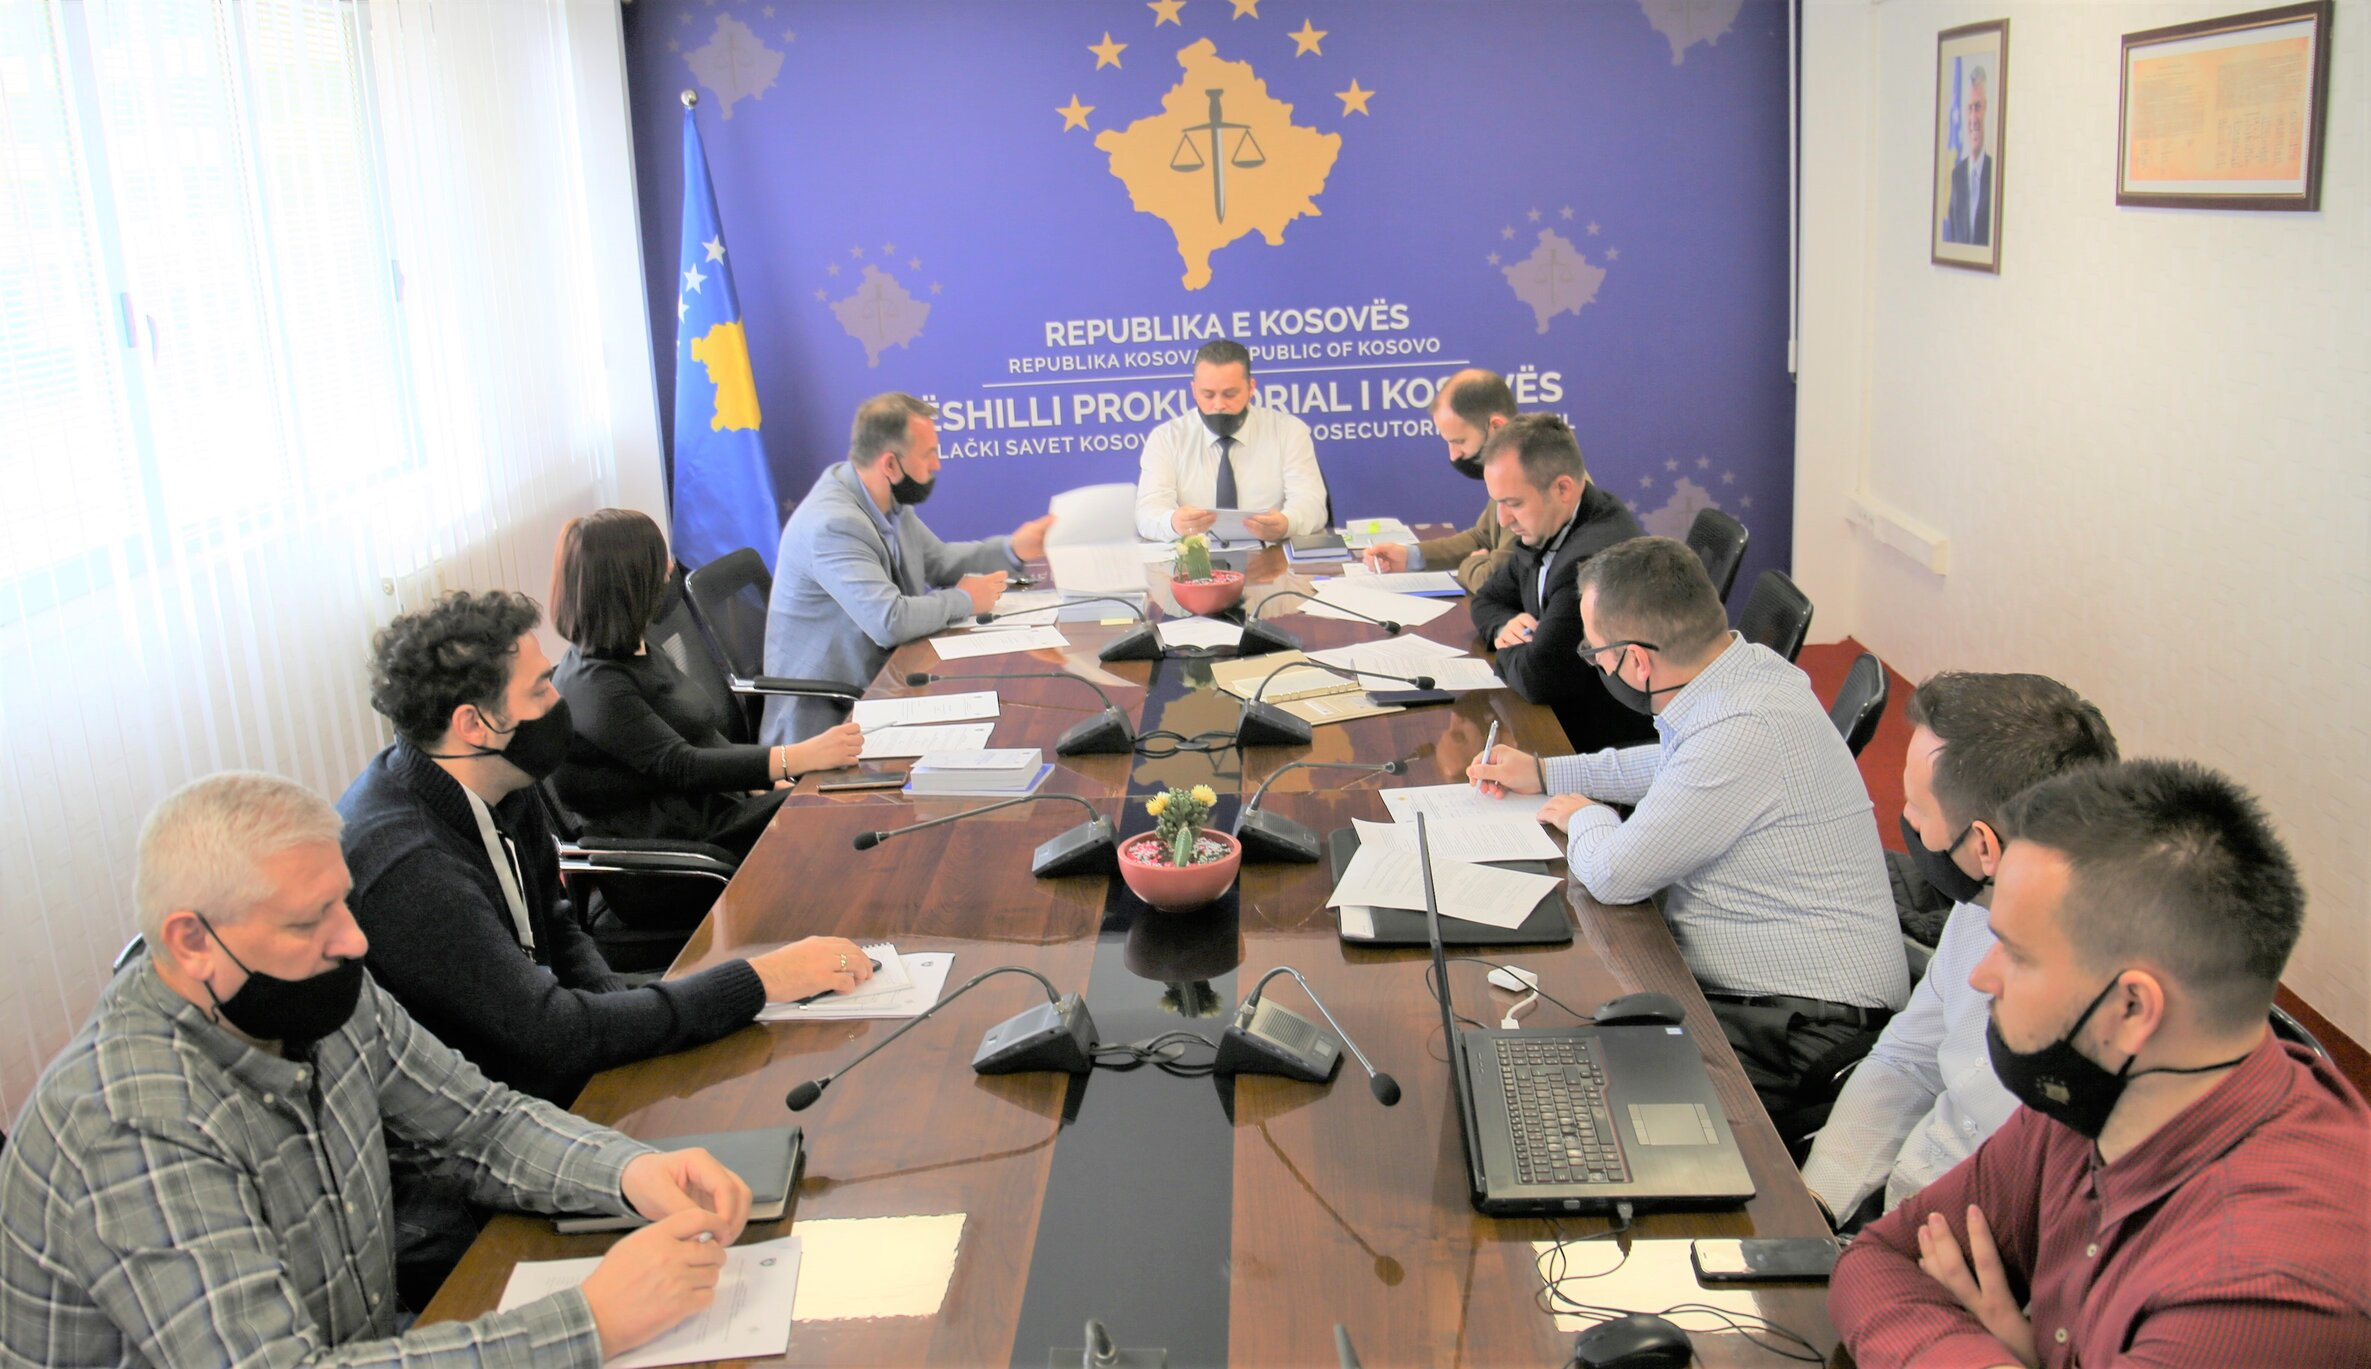 The draft Regulation on Personal Files of the State Prosecutor is presented